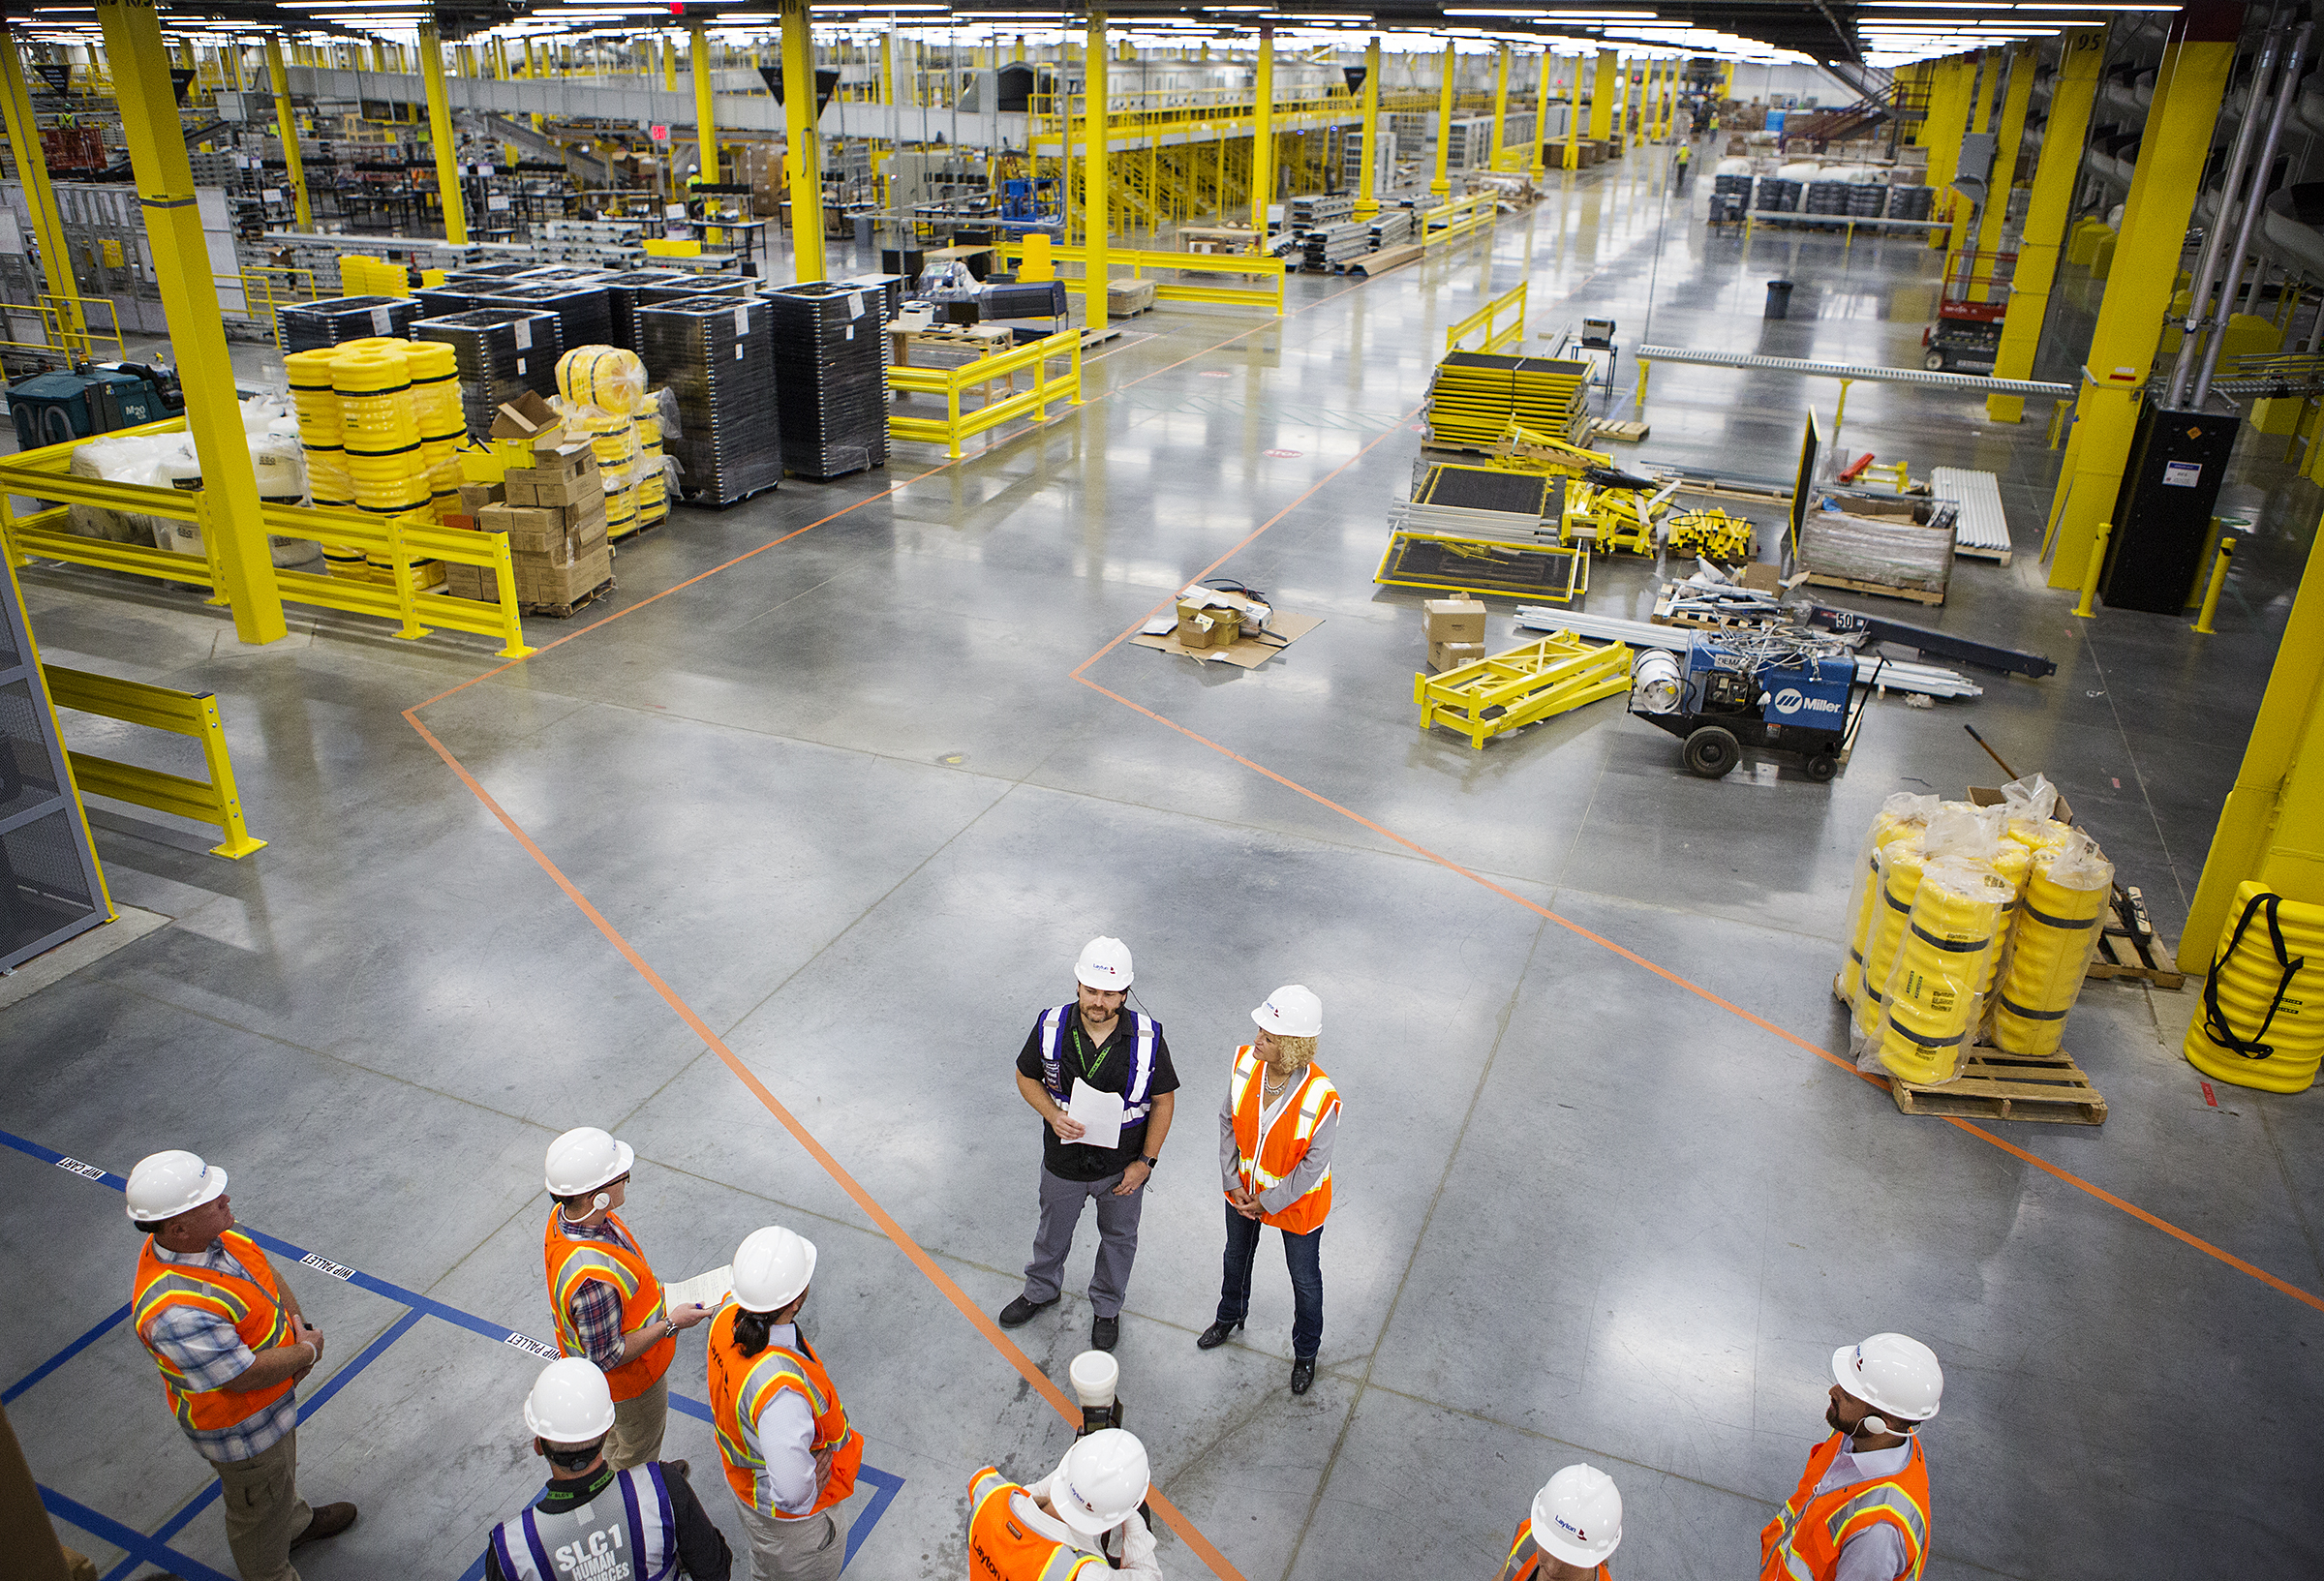 With operations to begin in weeks, Amazon shows off new Utah